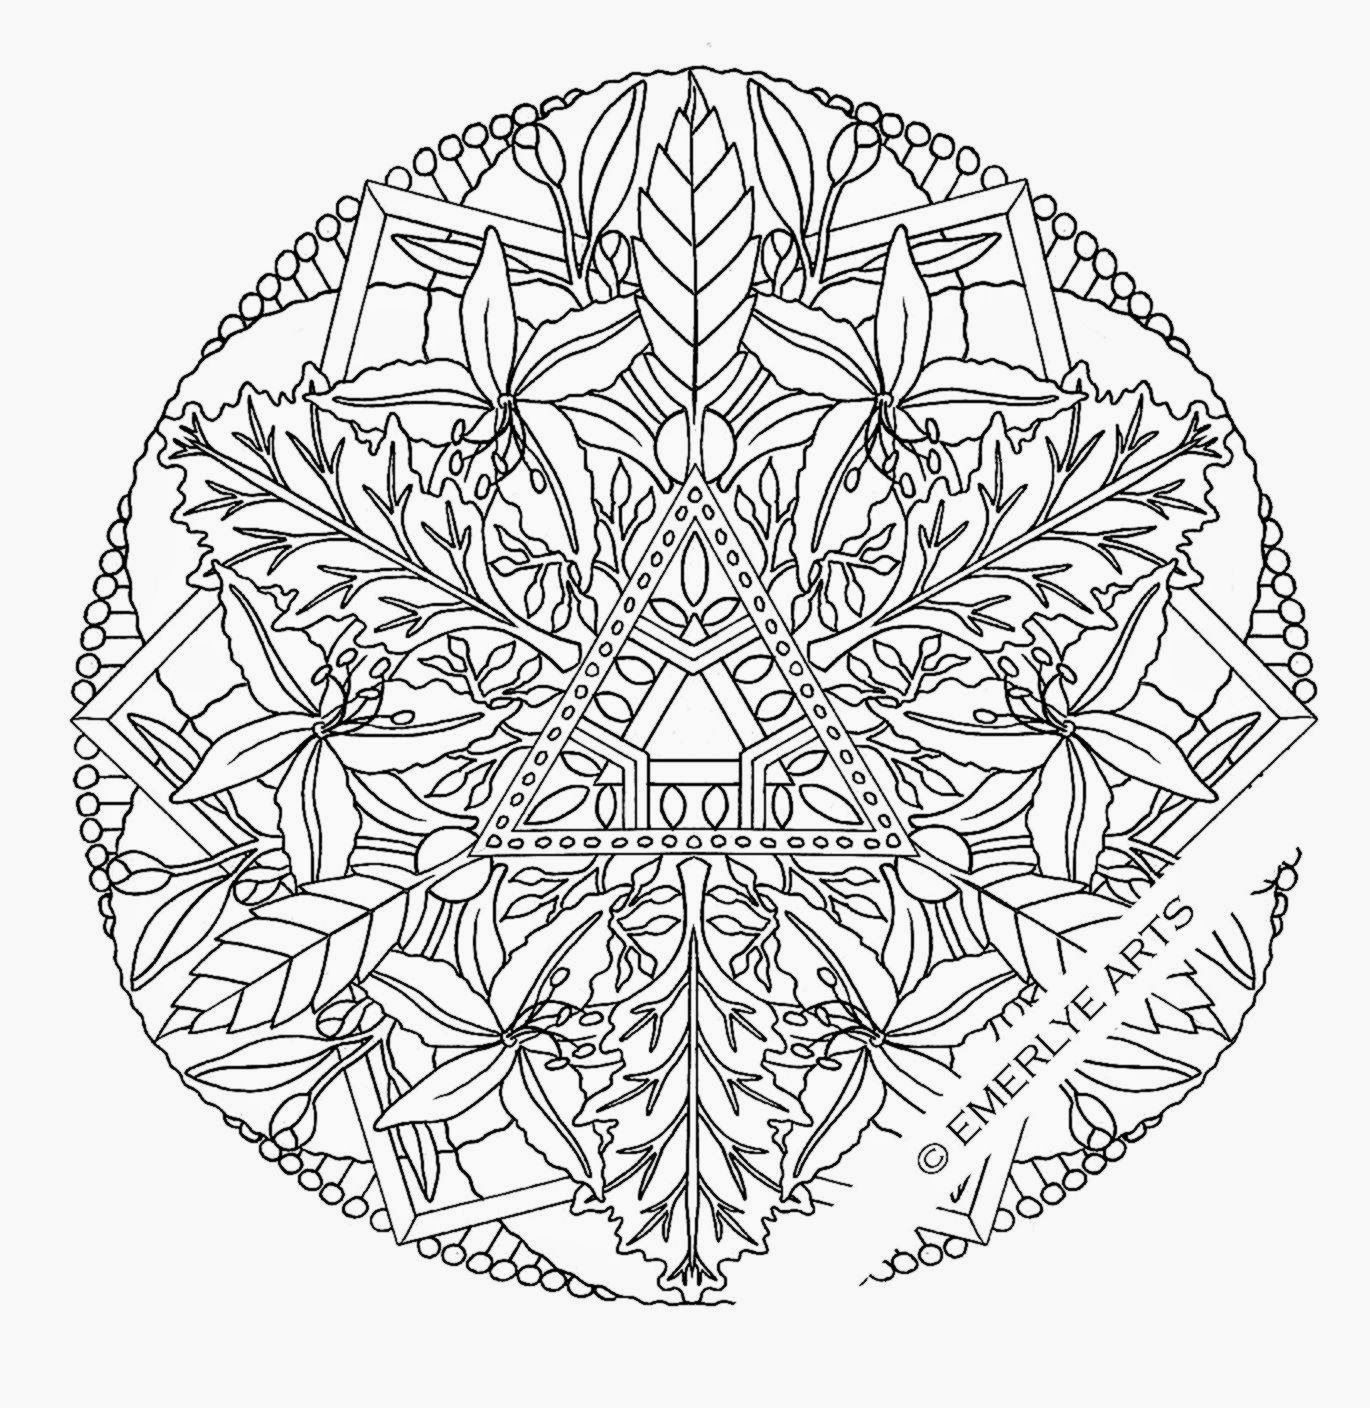 Flower Coloring Page Color Pages For Mom Description From Pinterest Com I Searched Geometric Coloring Pages Mandala Coloring Pages Detailed Coloring Pages